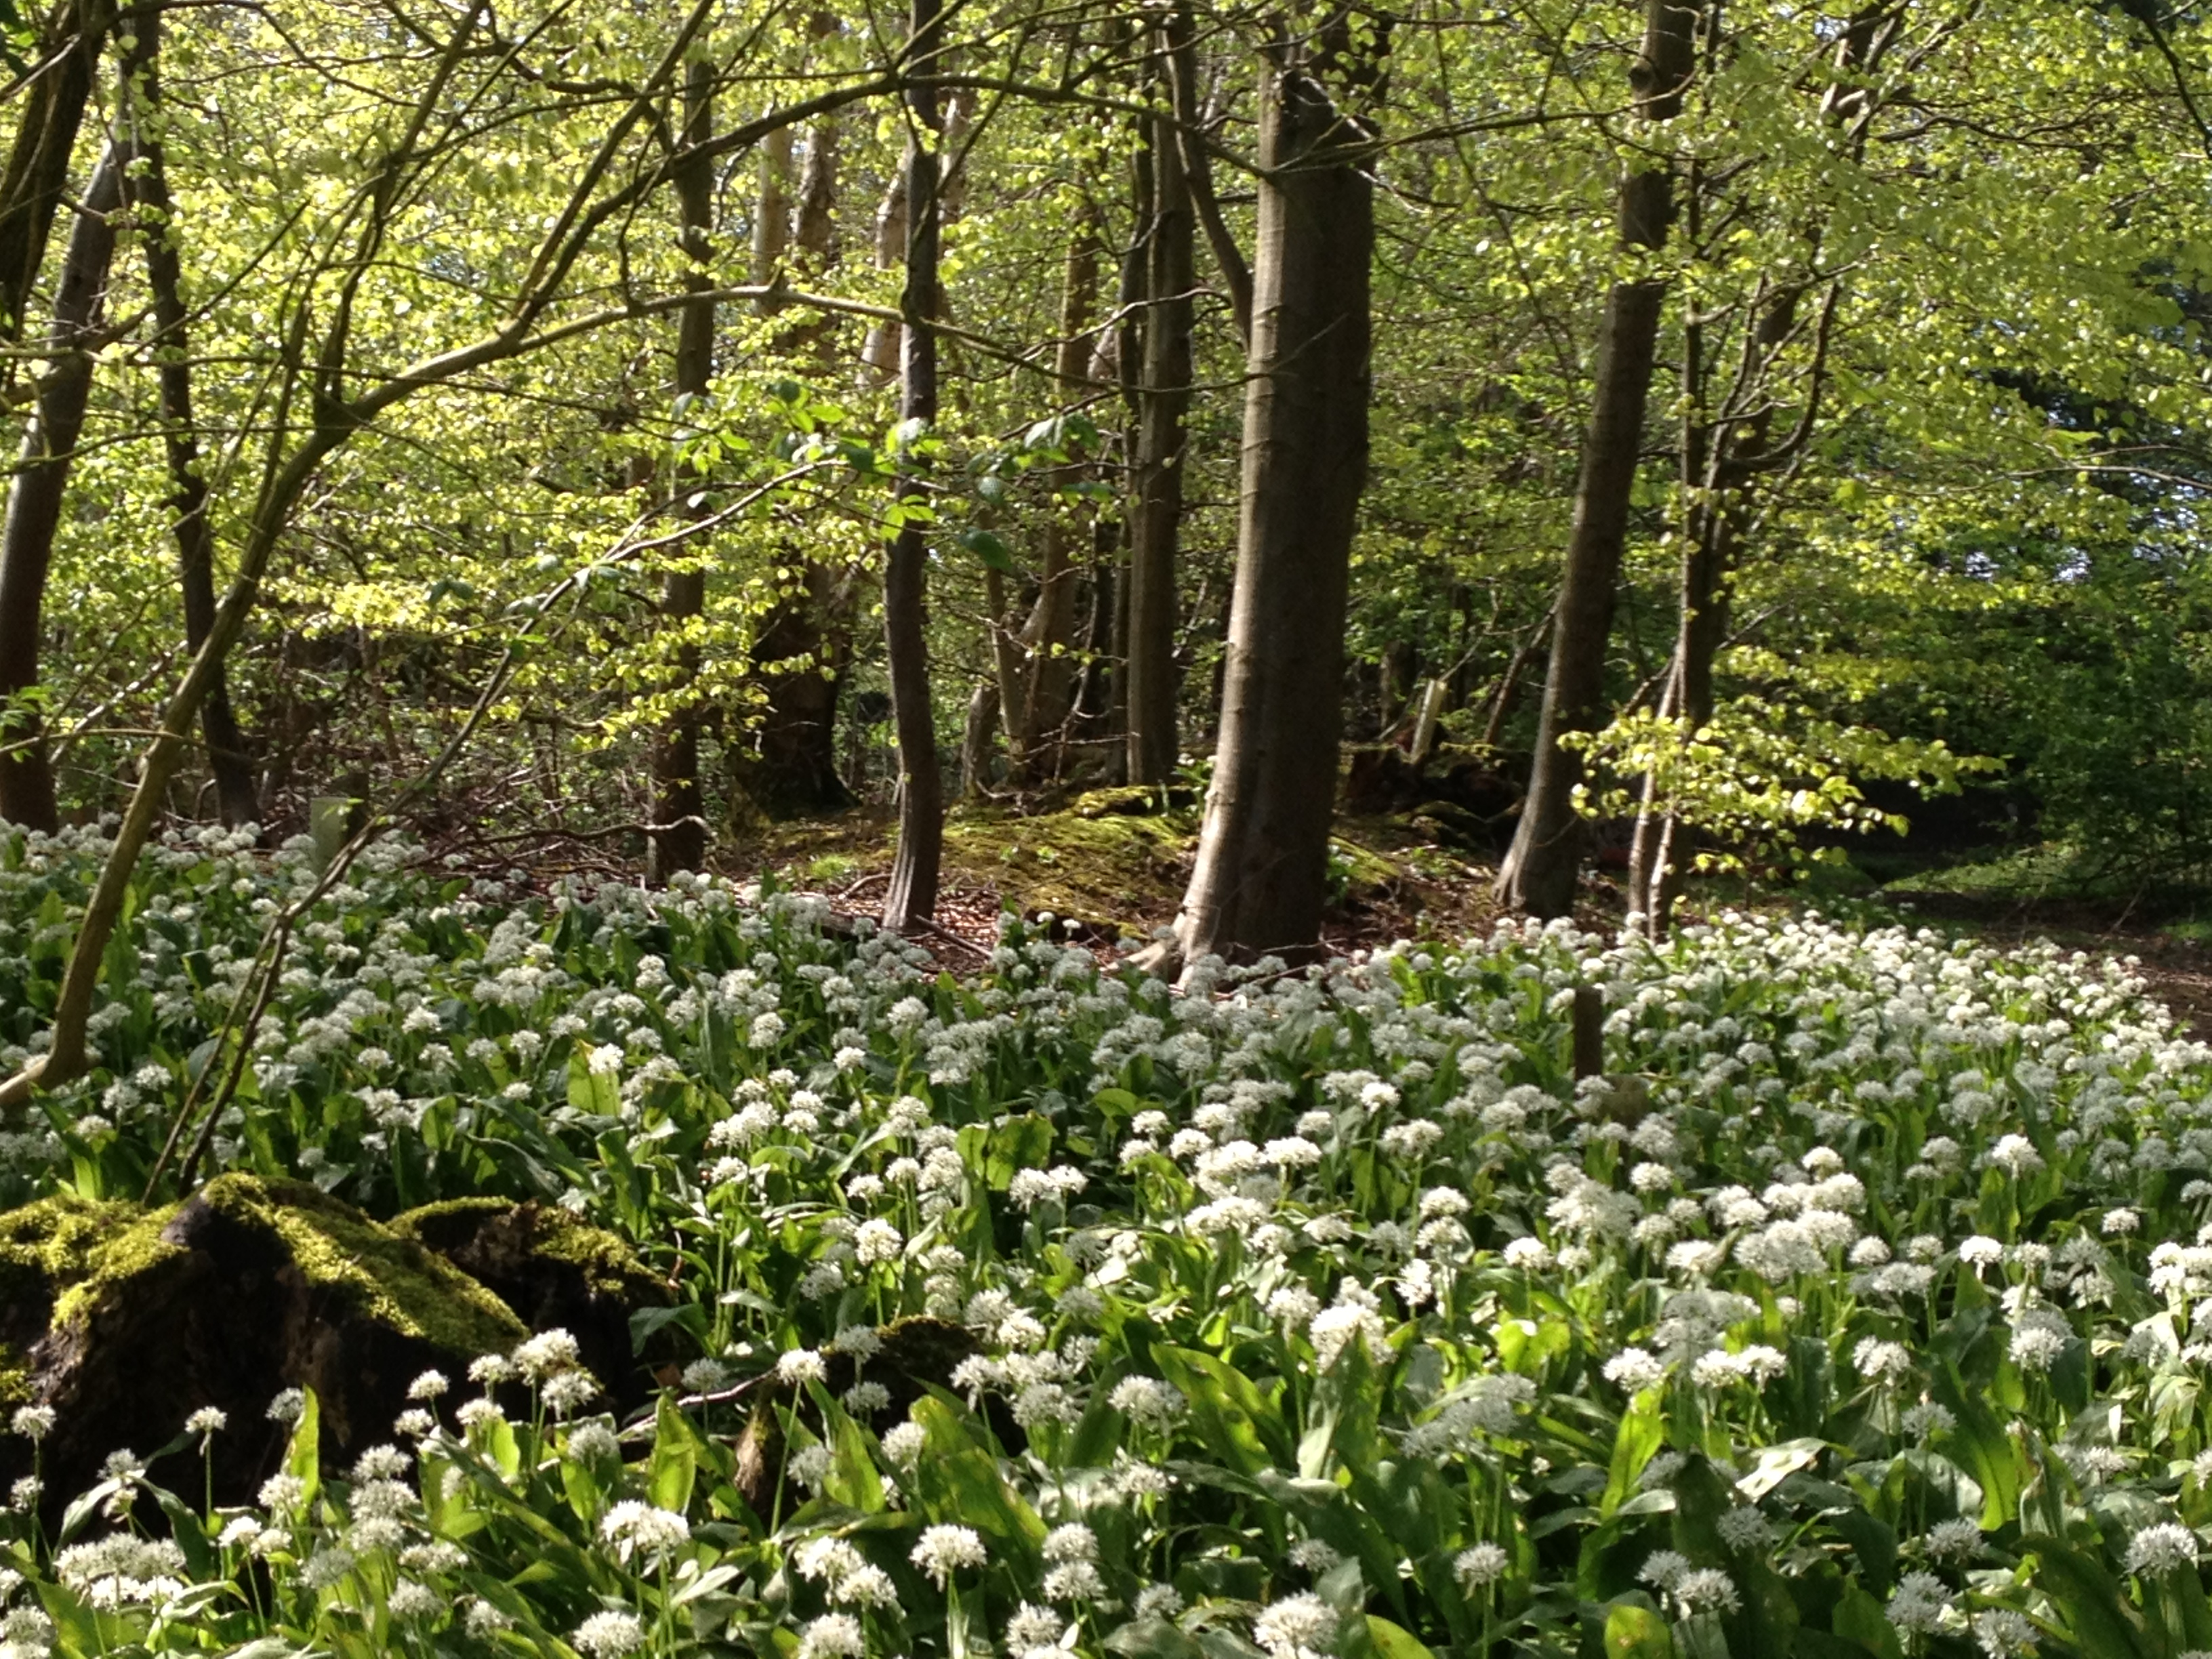 Beech wood bursting into life with wild garlic